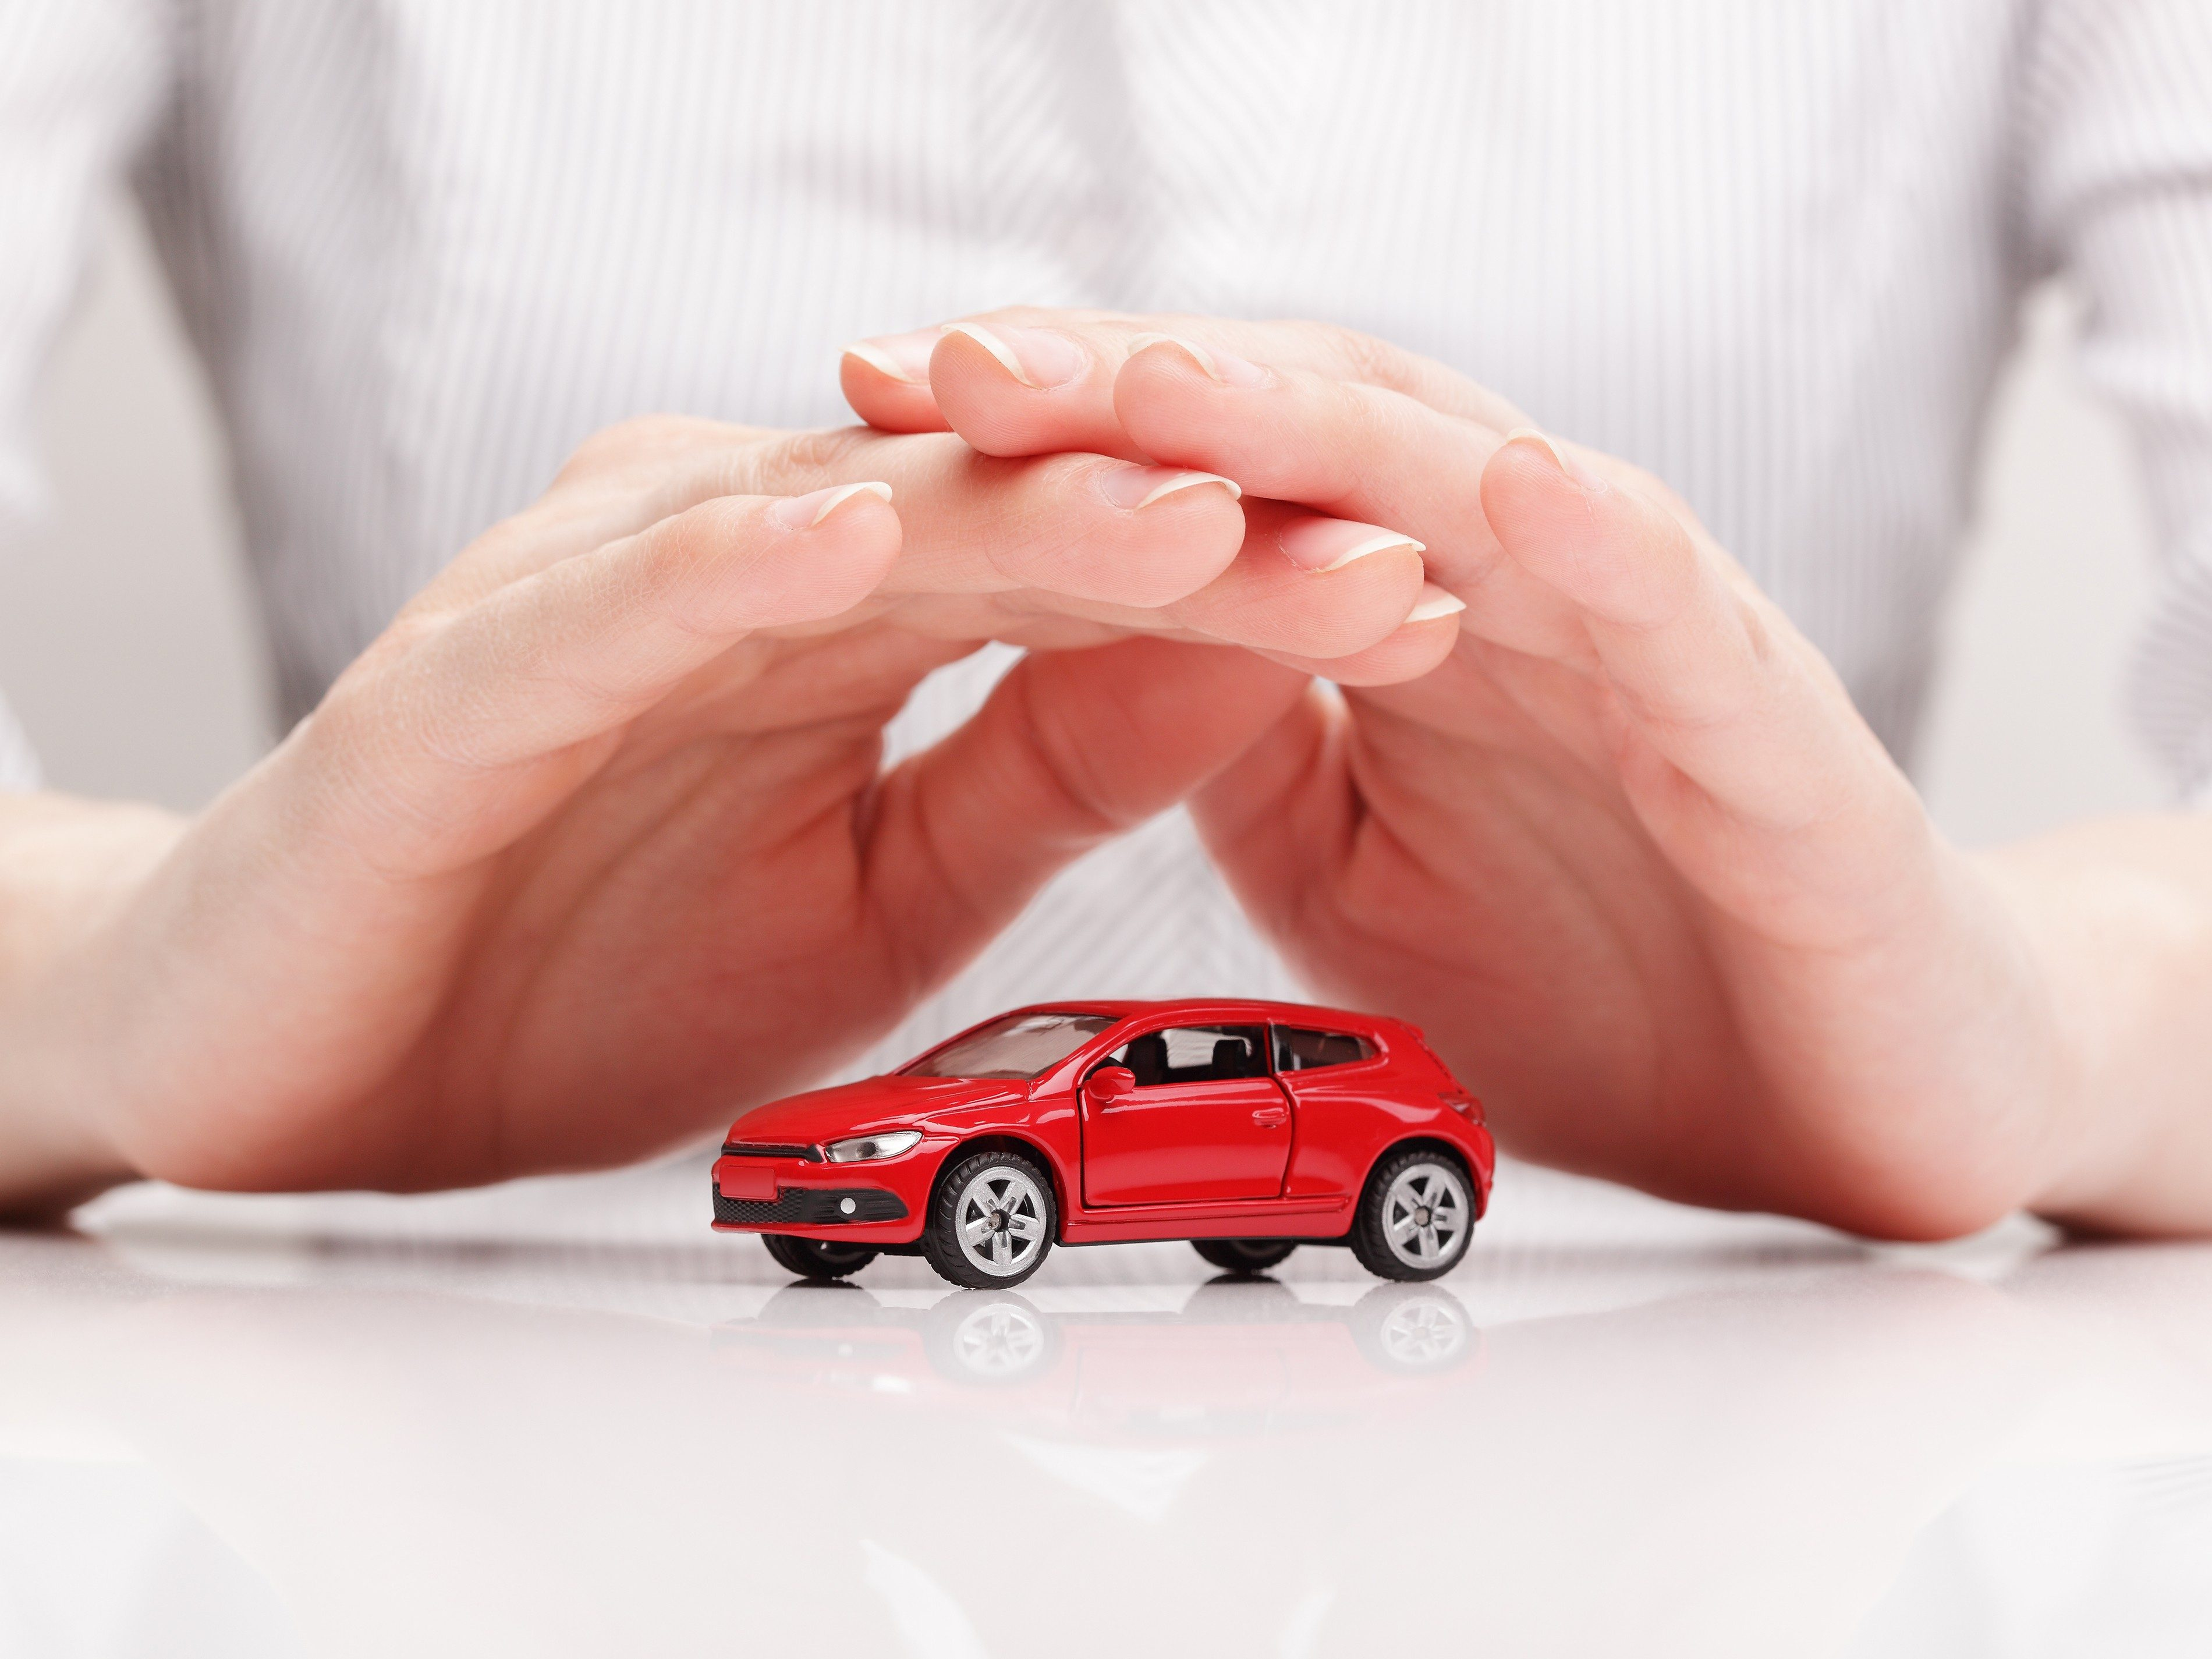 1. Increase Your Car Insurance Deductible